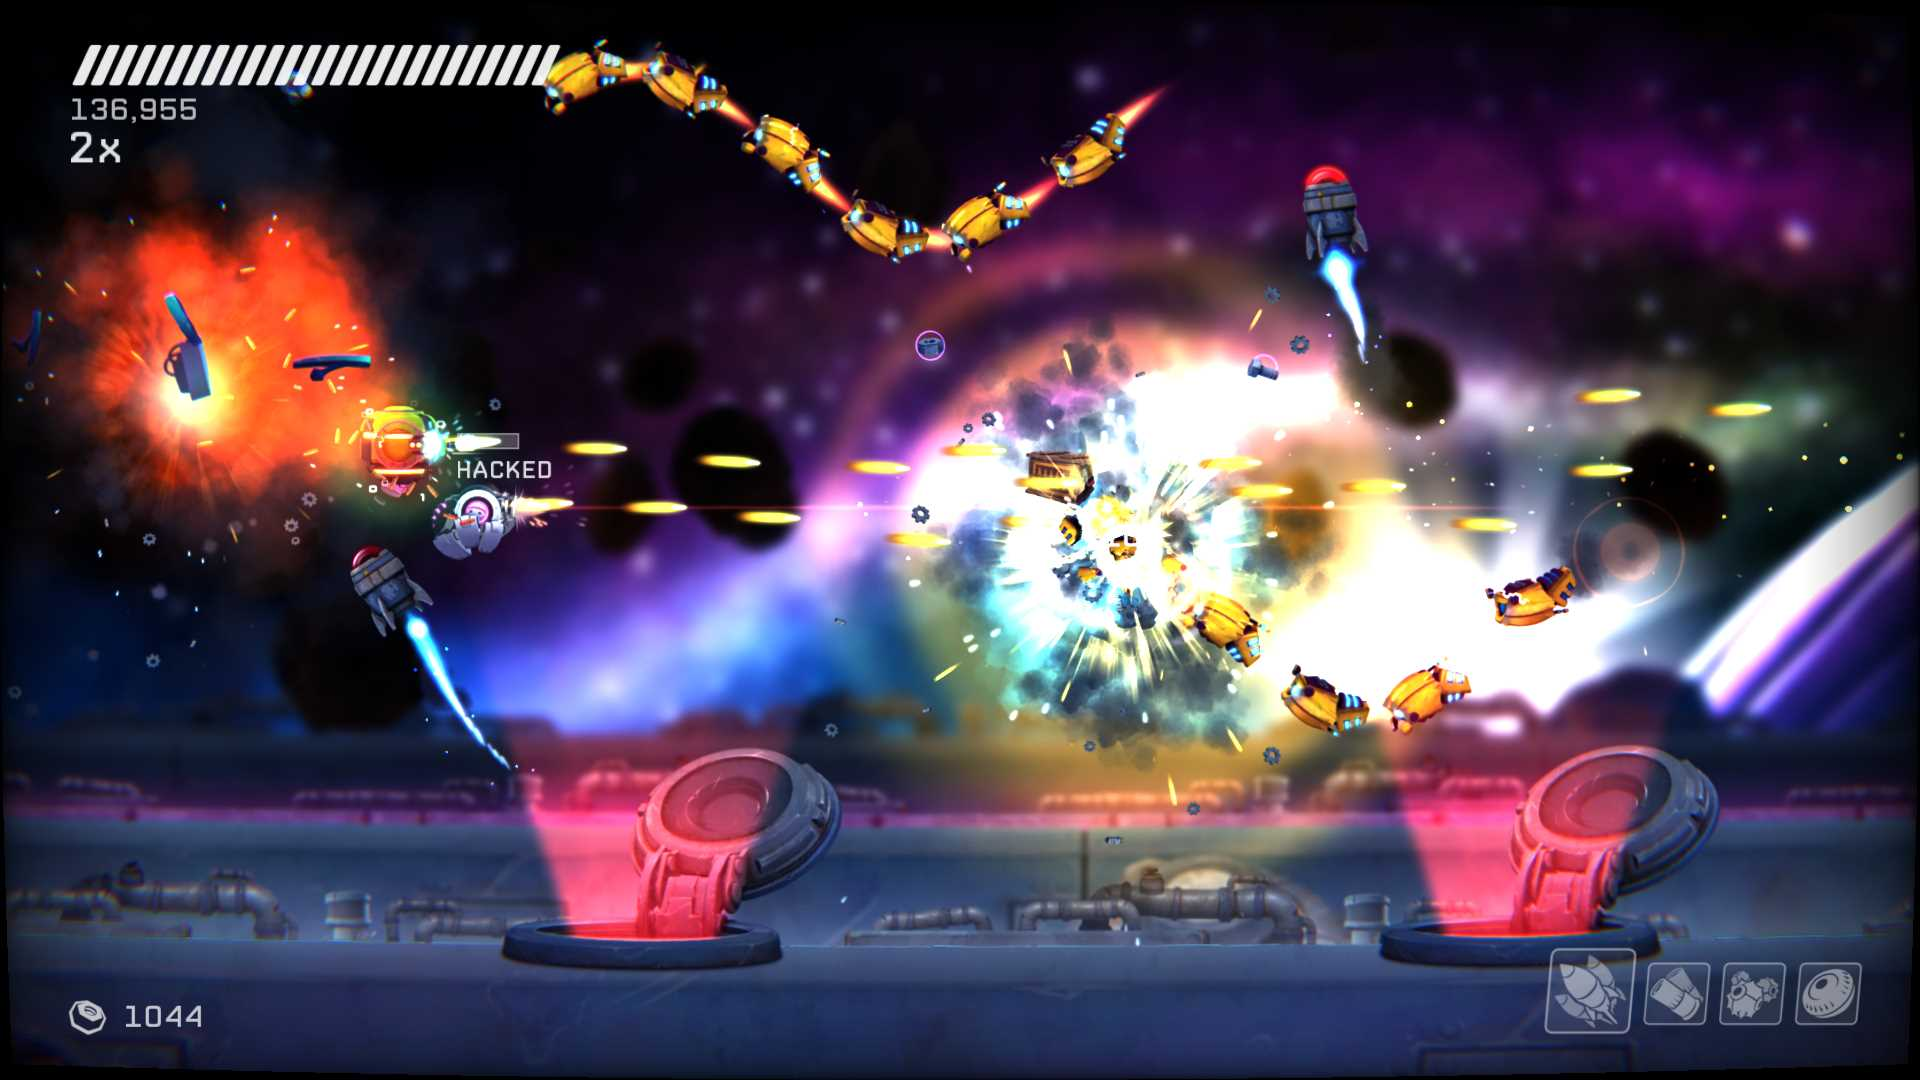 rive_screenshot_05